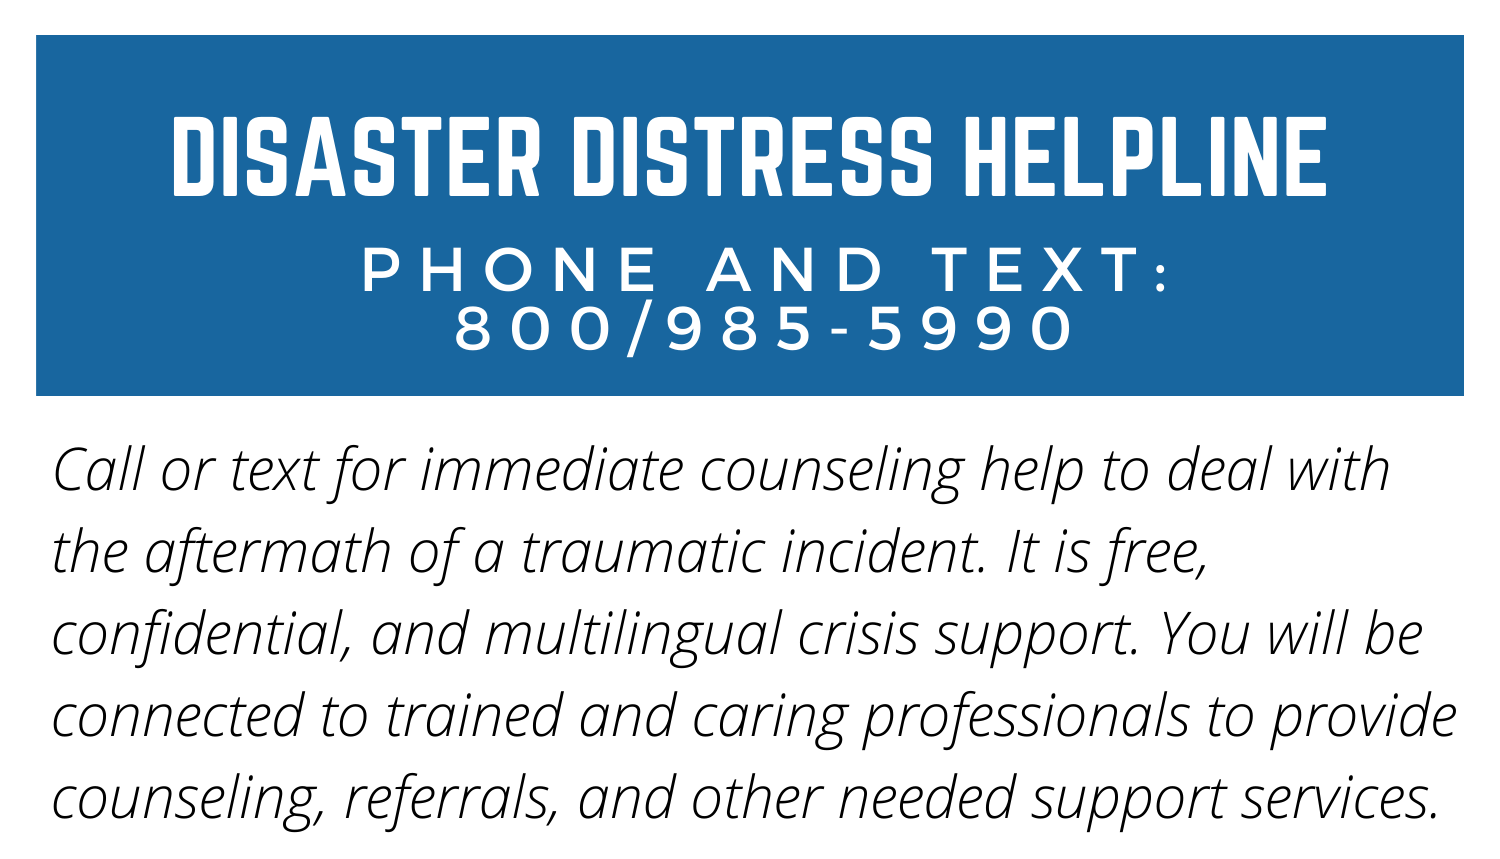 Disaster Helpline phone 8009855990